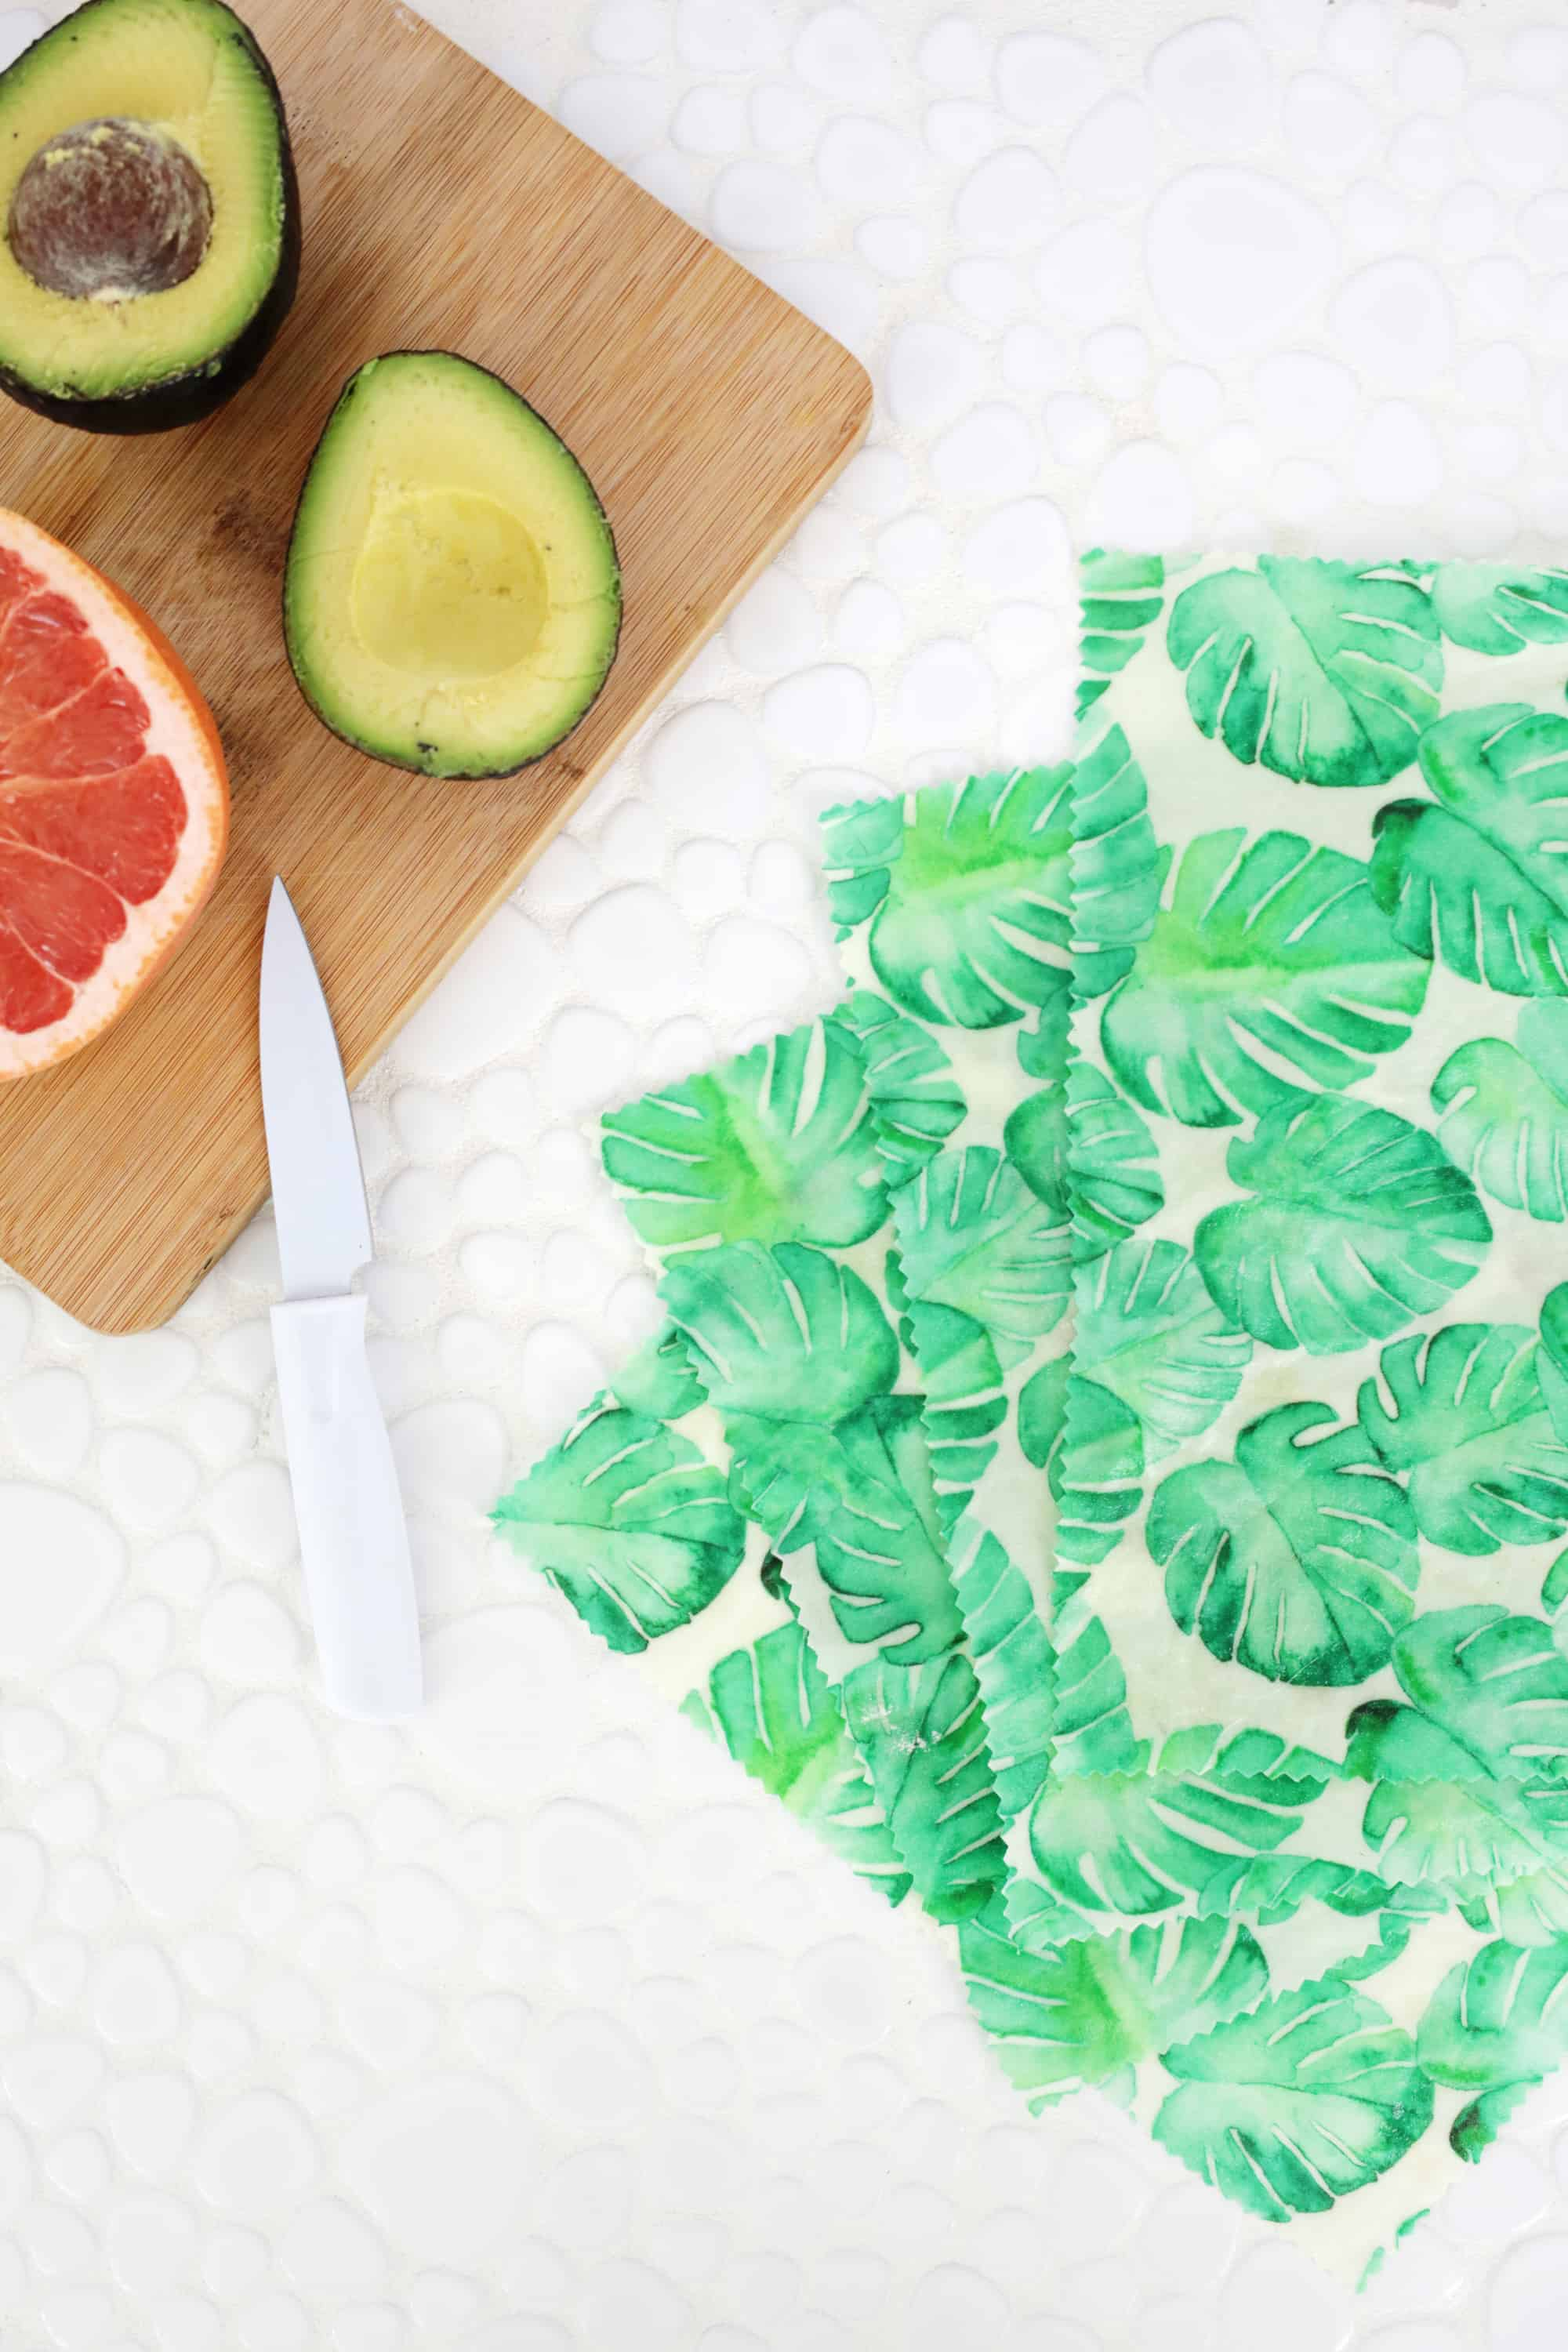 Make Your Own Beeswax Food Wraps! - A Beautiful Mess